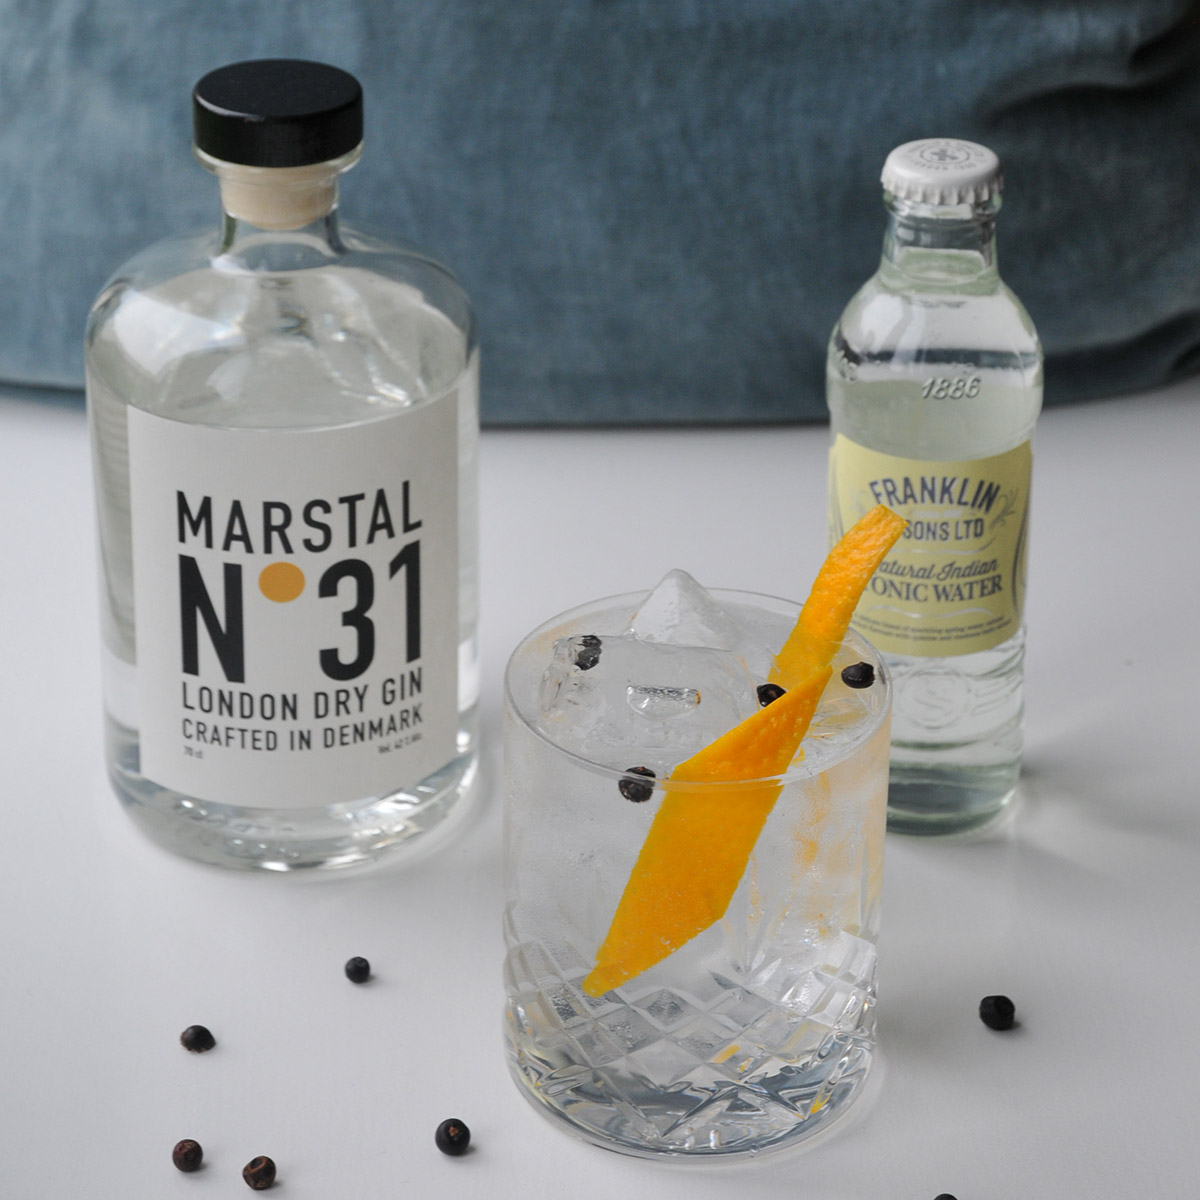 Marstal No. 31 & Franklin & Sons Indian Tonic